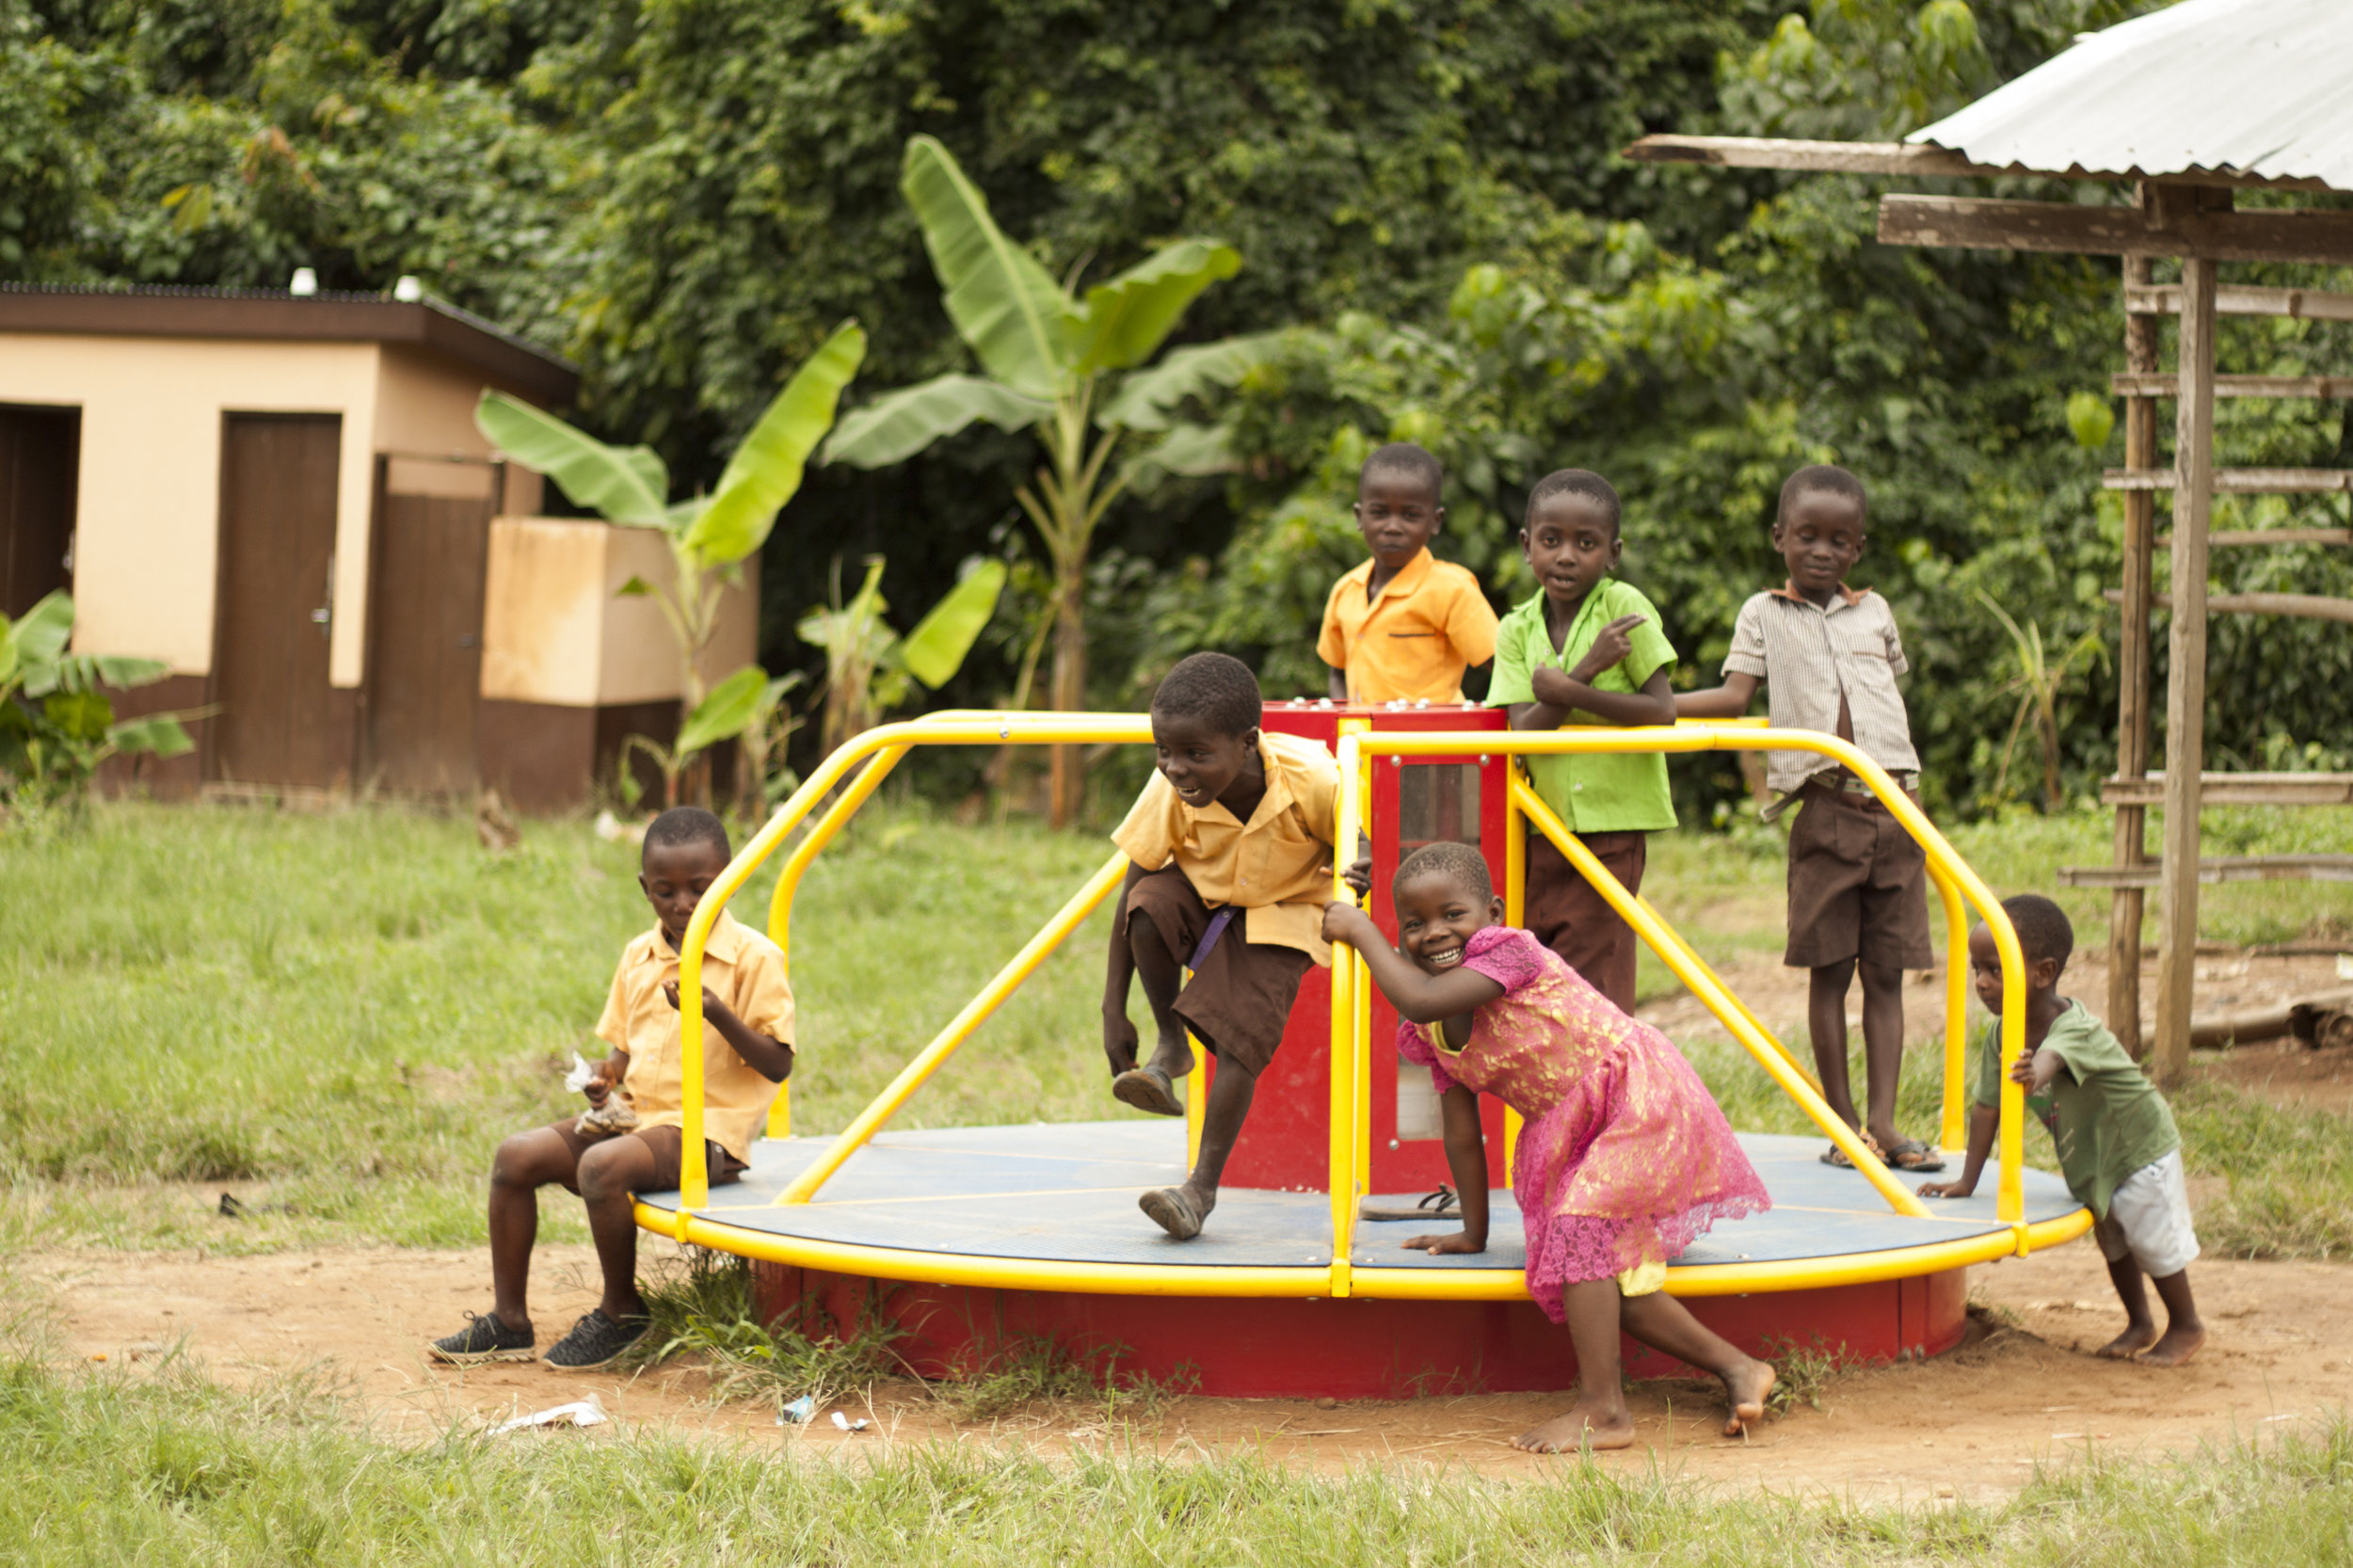 $10,000 - Provides a merry-go-round for a school